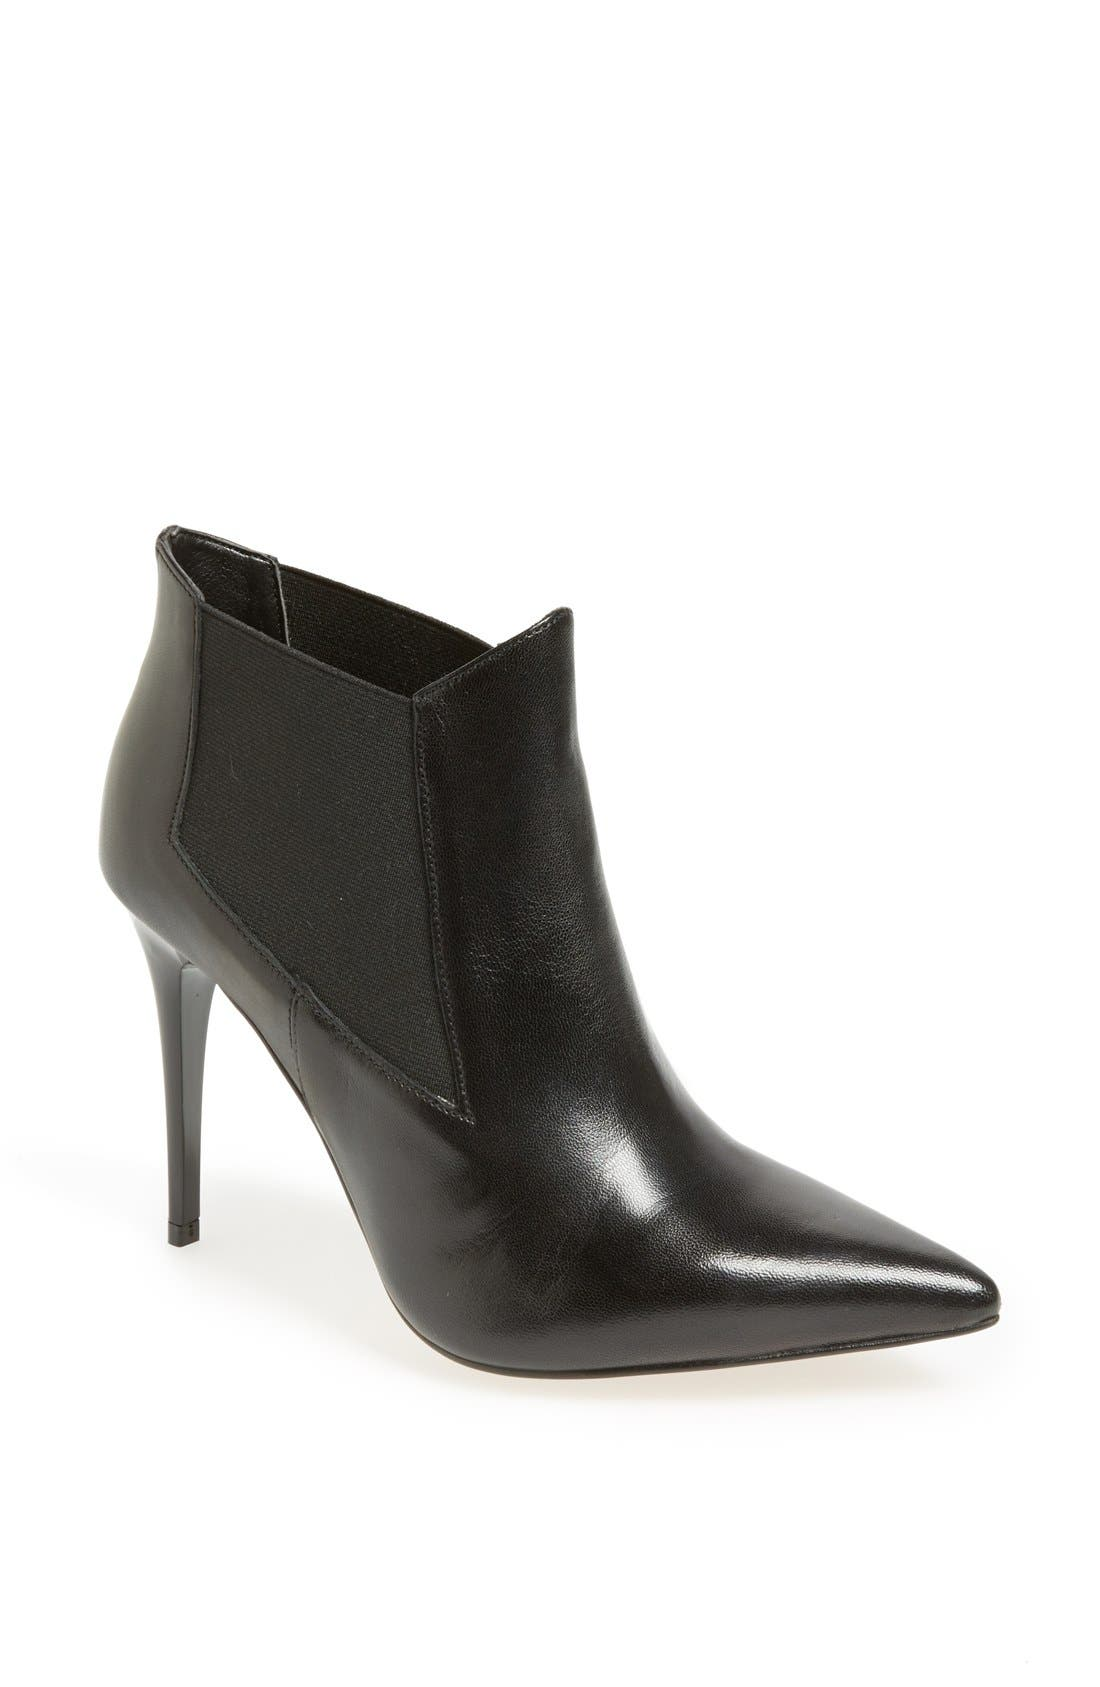 Alternate Image 1 Selected - Topshop 'All Night' Chelsea Boot